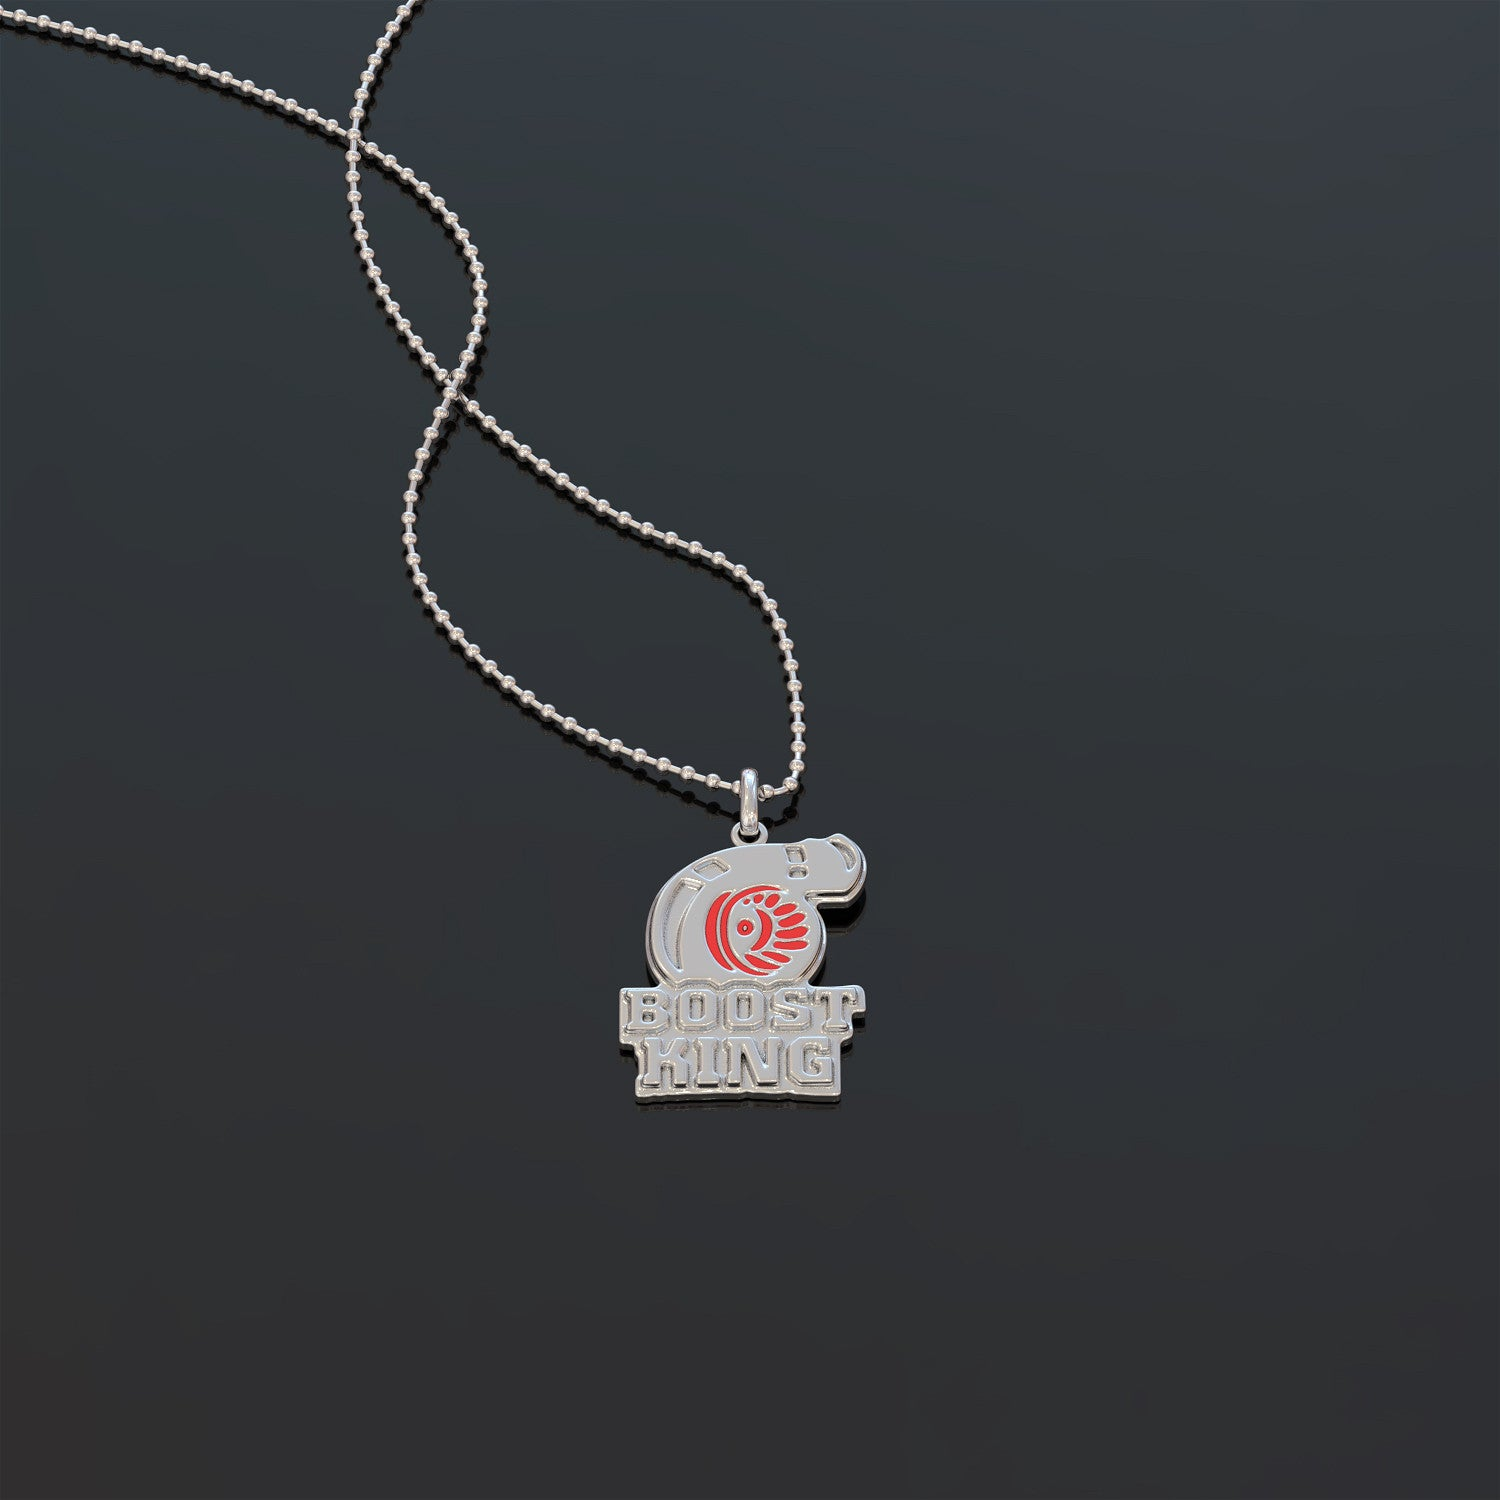 Boost King Necklace